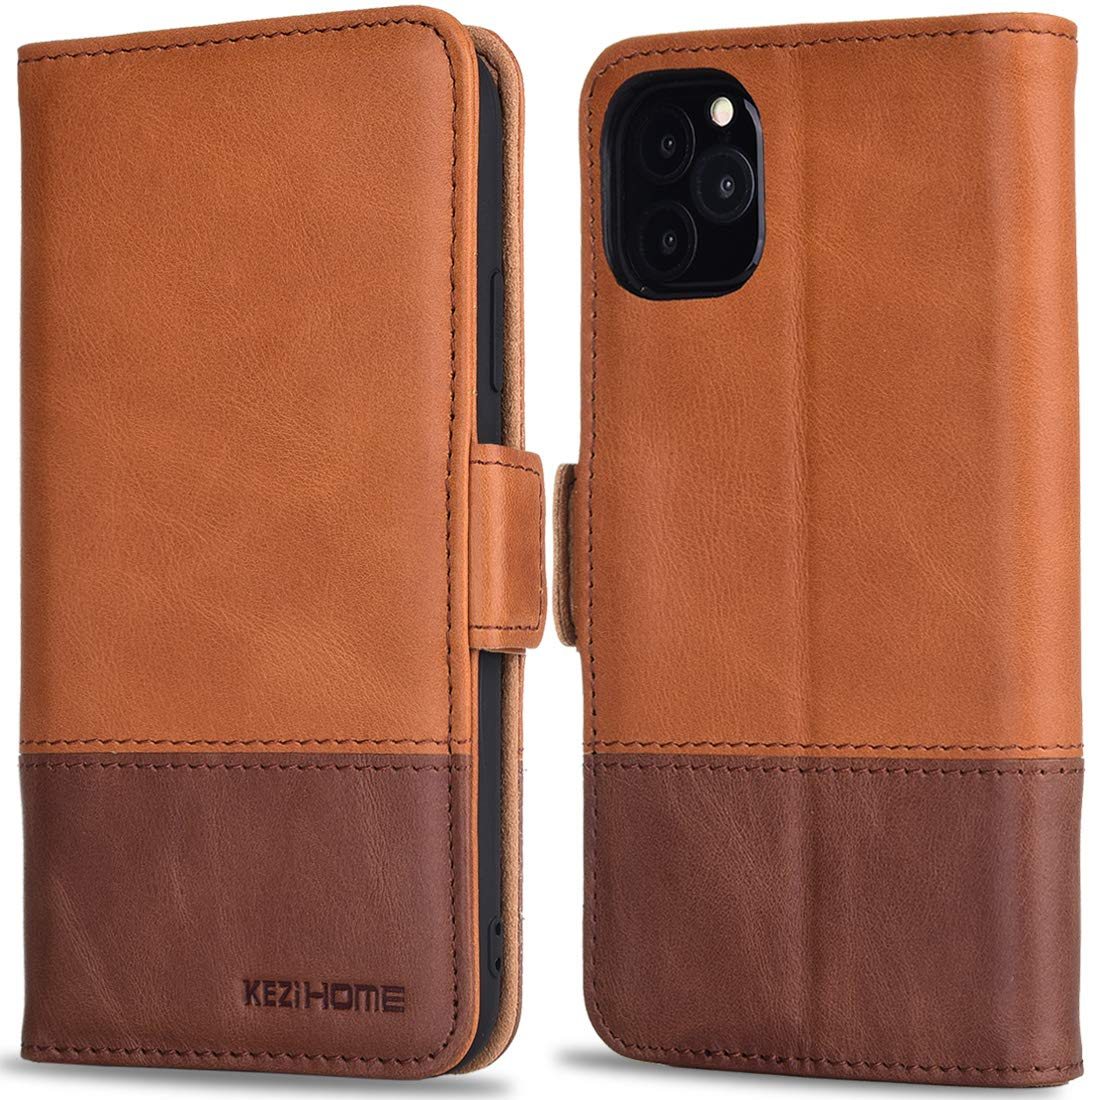 KEZiHOMEiPhone 11 Pro Max Case 6.5 inch, Genuine Leather Wallet Case Flip Magnetic Cover RFID Blocking Card Slots Kickstand Shockproof Case Compatible with iPhone 11 Pro Max 6.5 inch (Khaki/Brown)